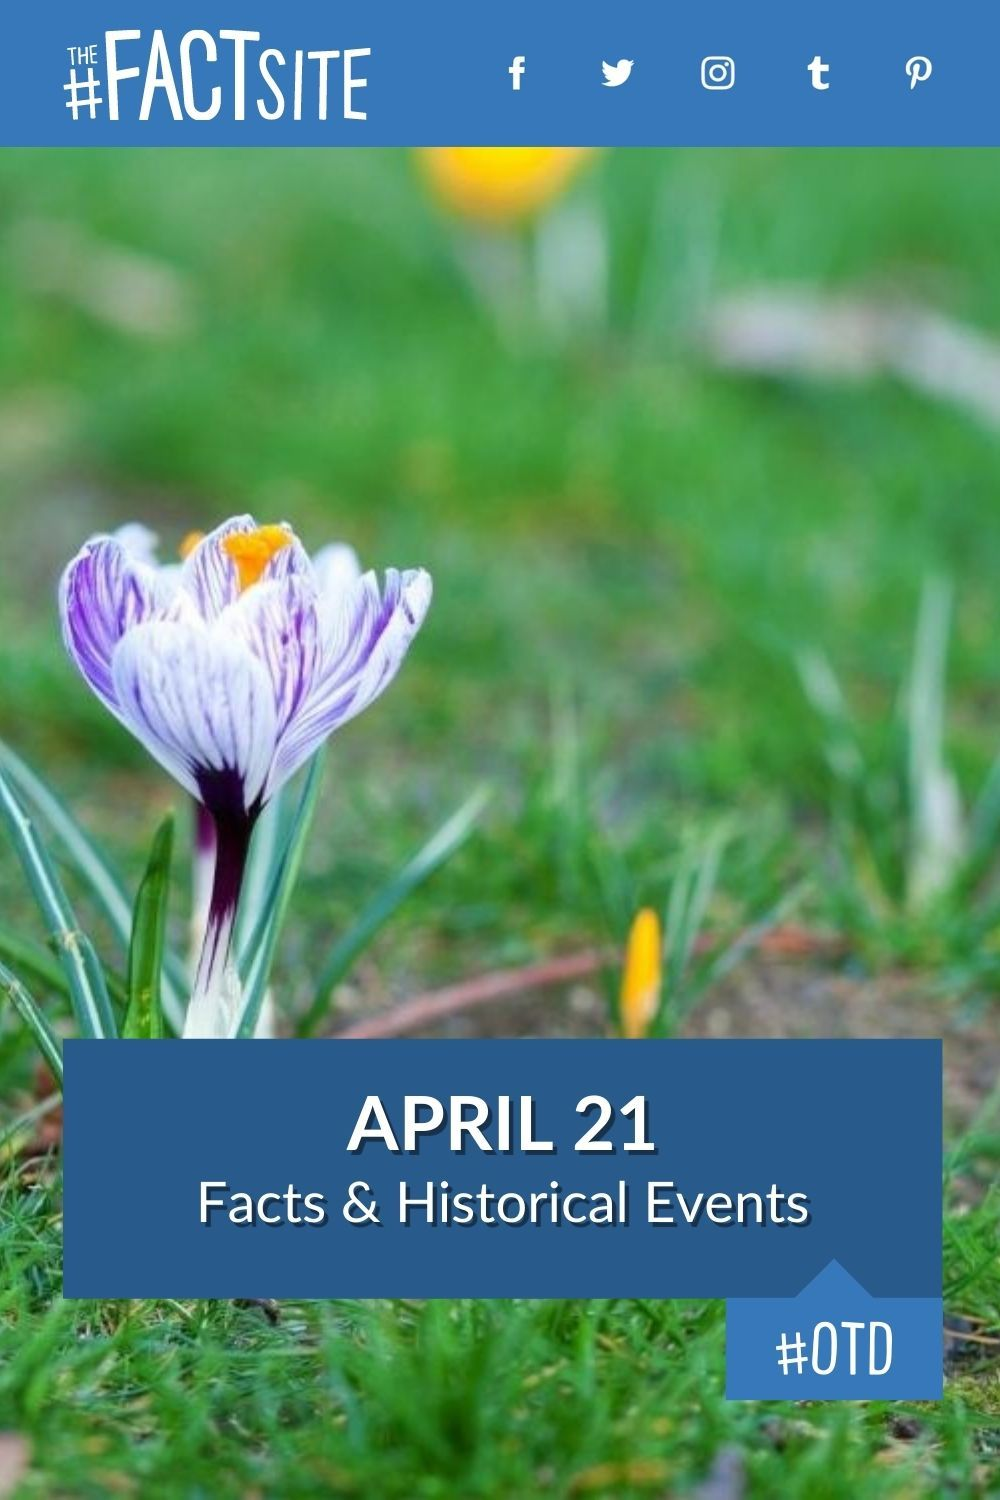 Facts & Historic Events That Happened on April 21